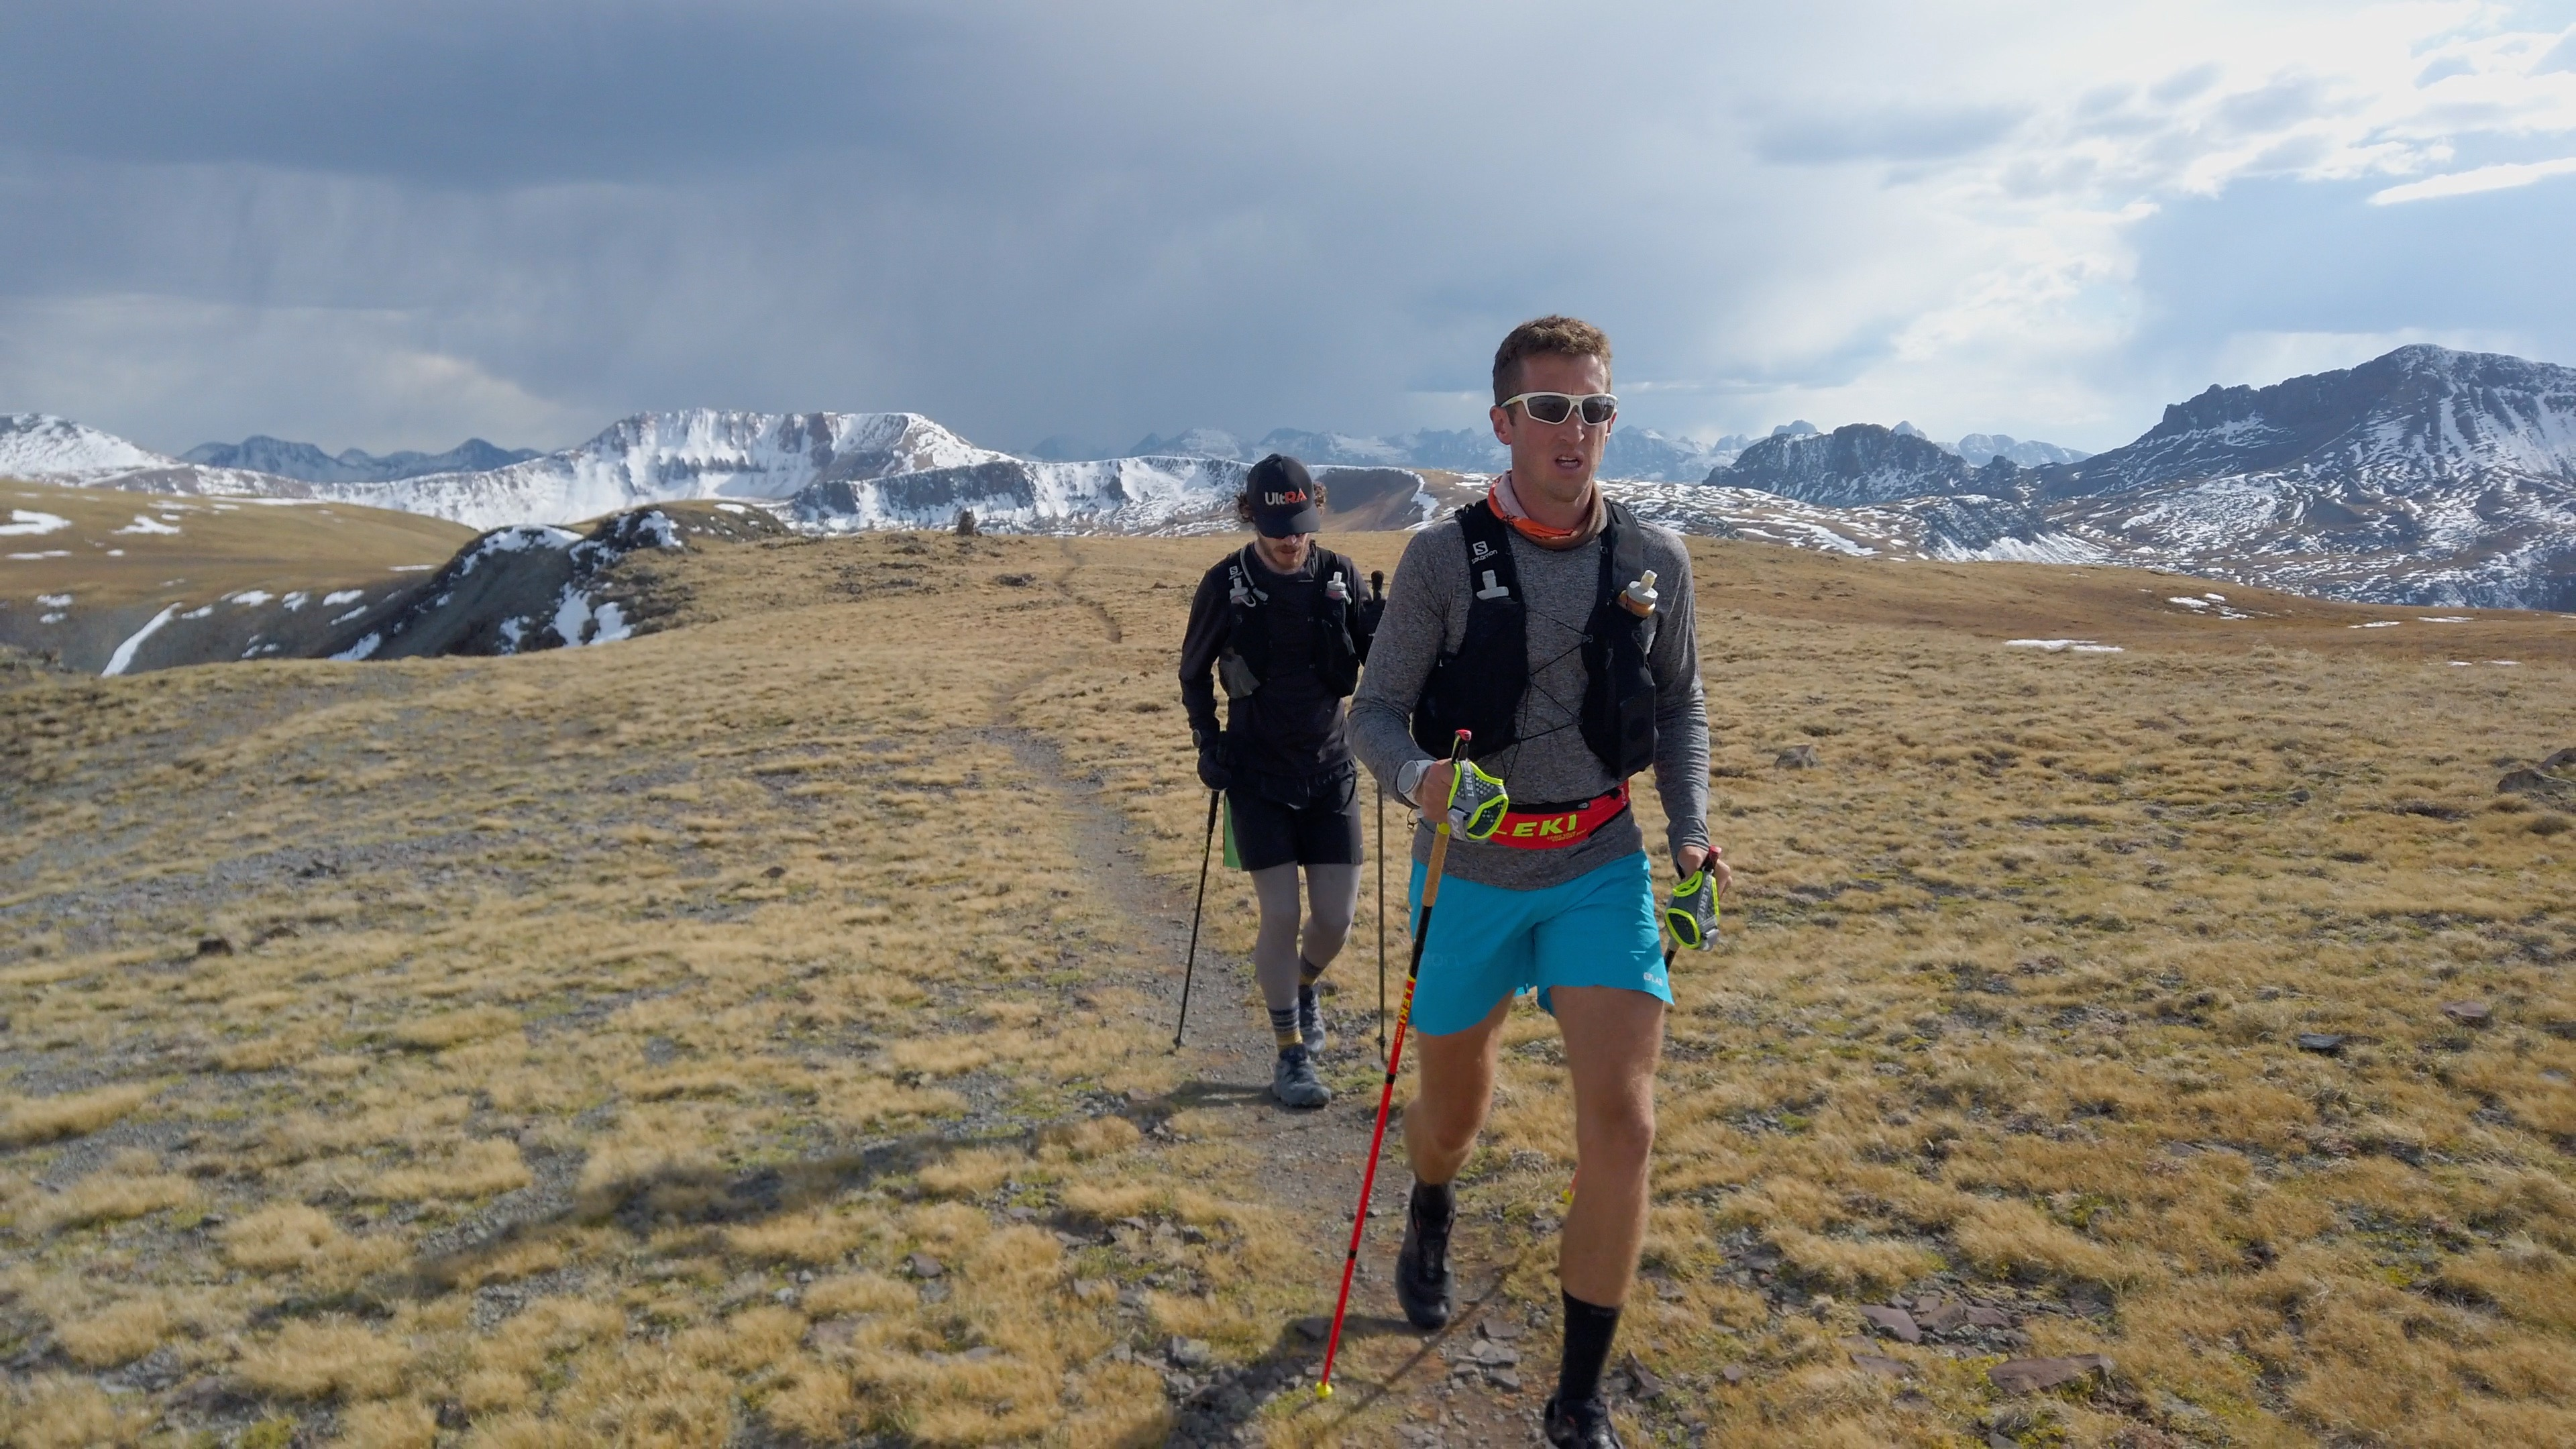 Mike McKnight on Colorado Trail